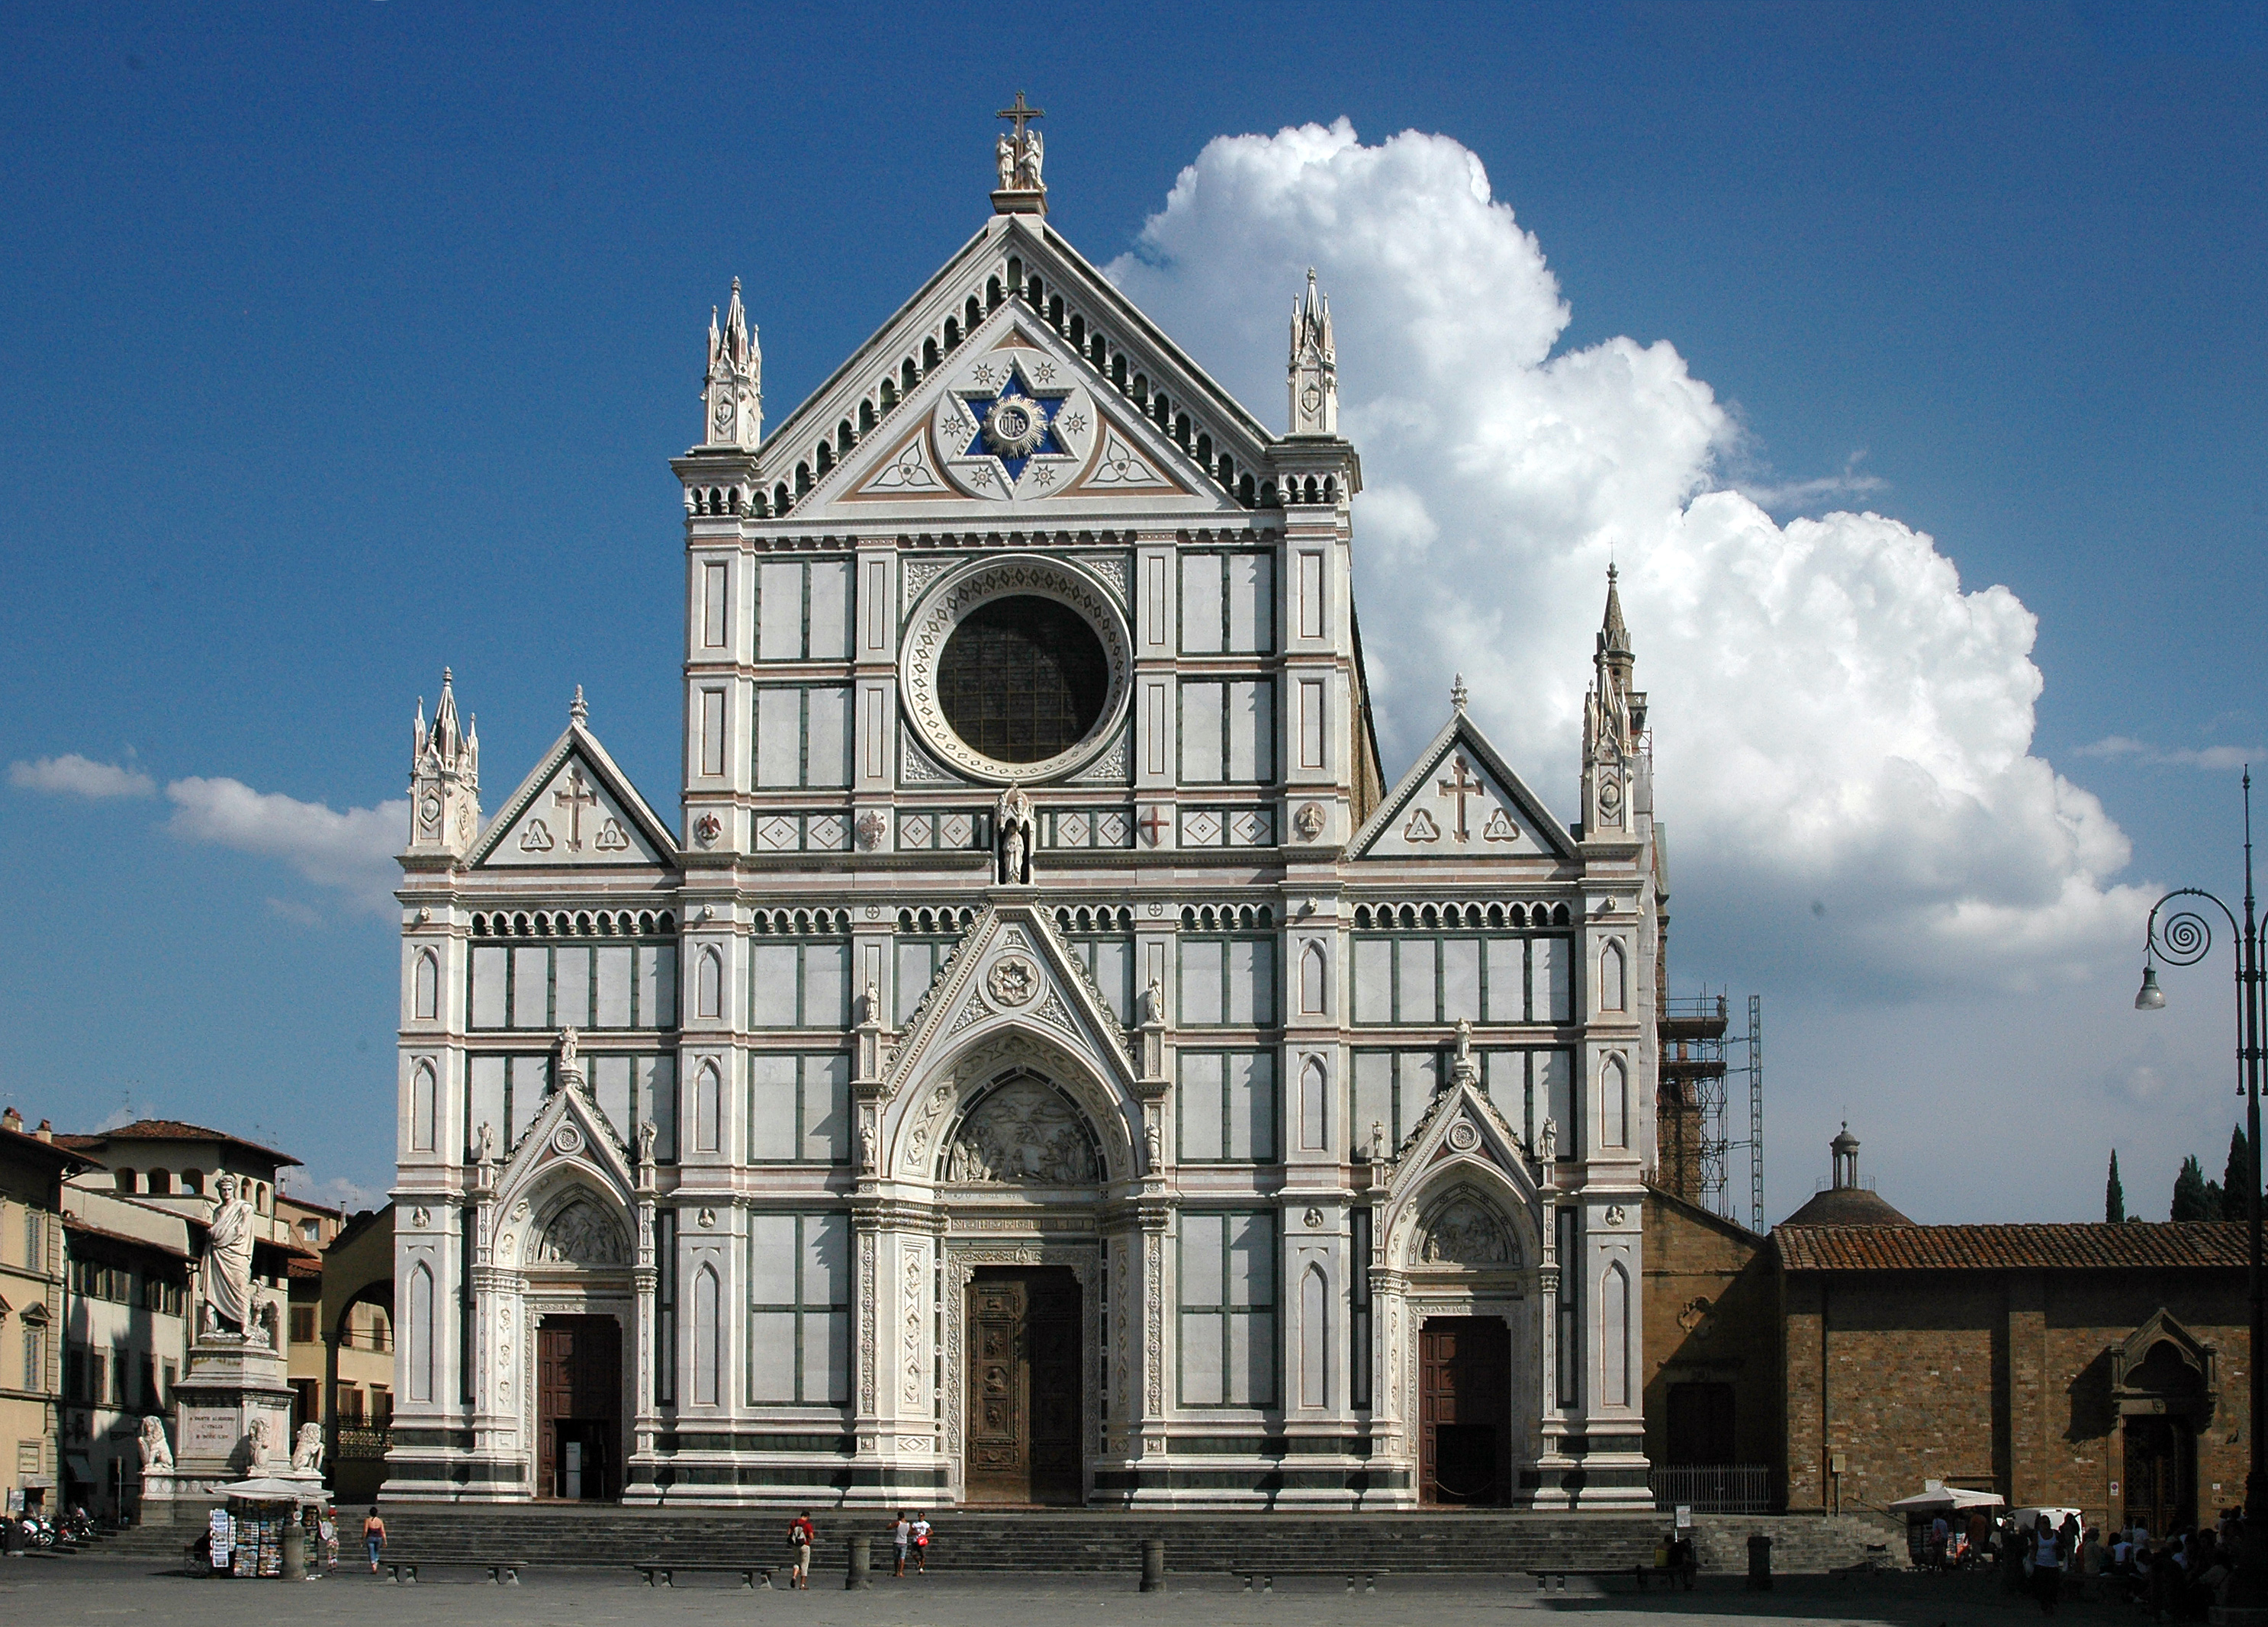 File:Basilica of Santa Croce - 0972.jpg - Wikimedia Commons